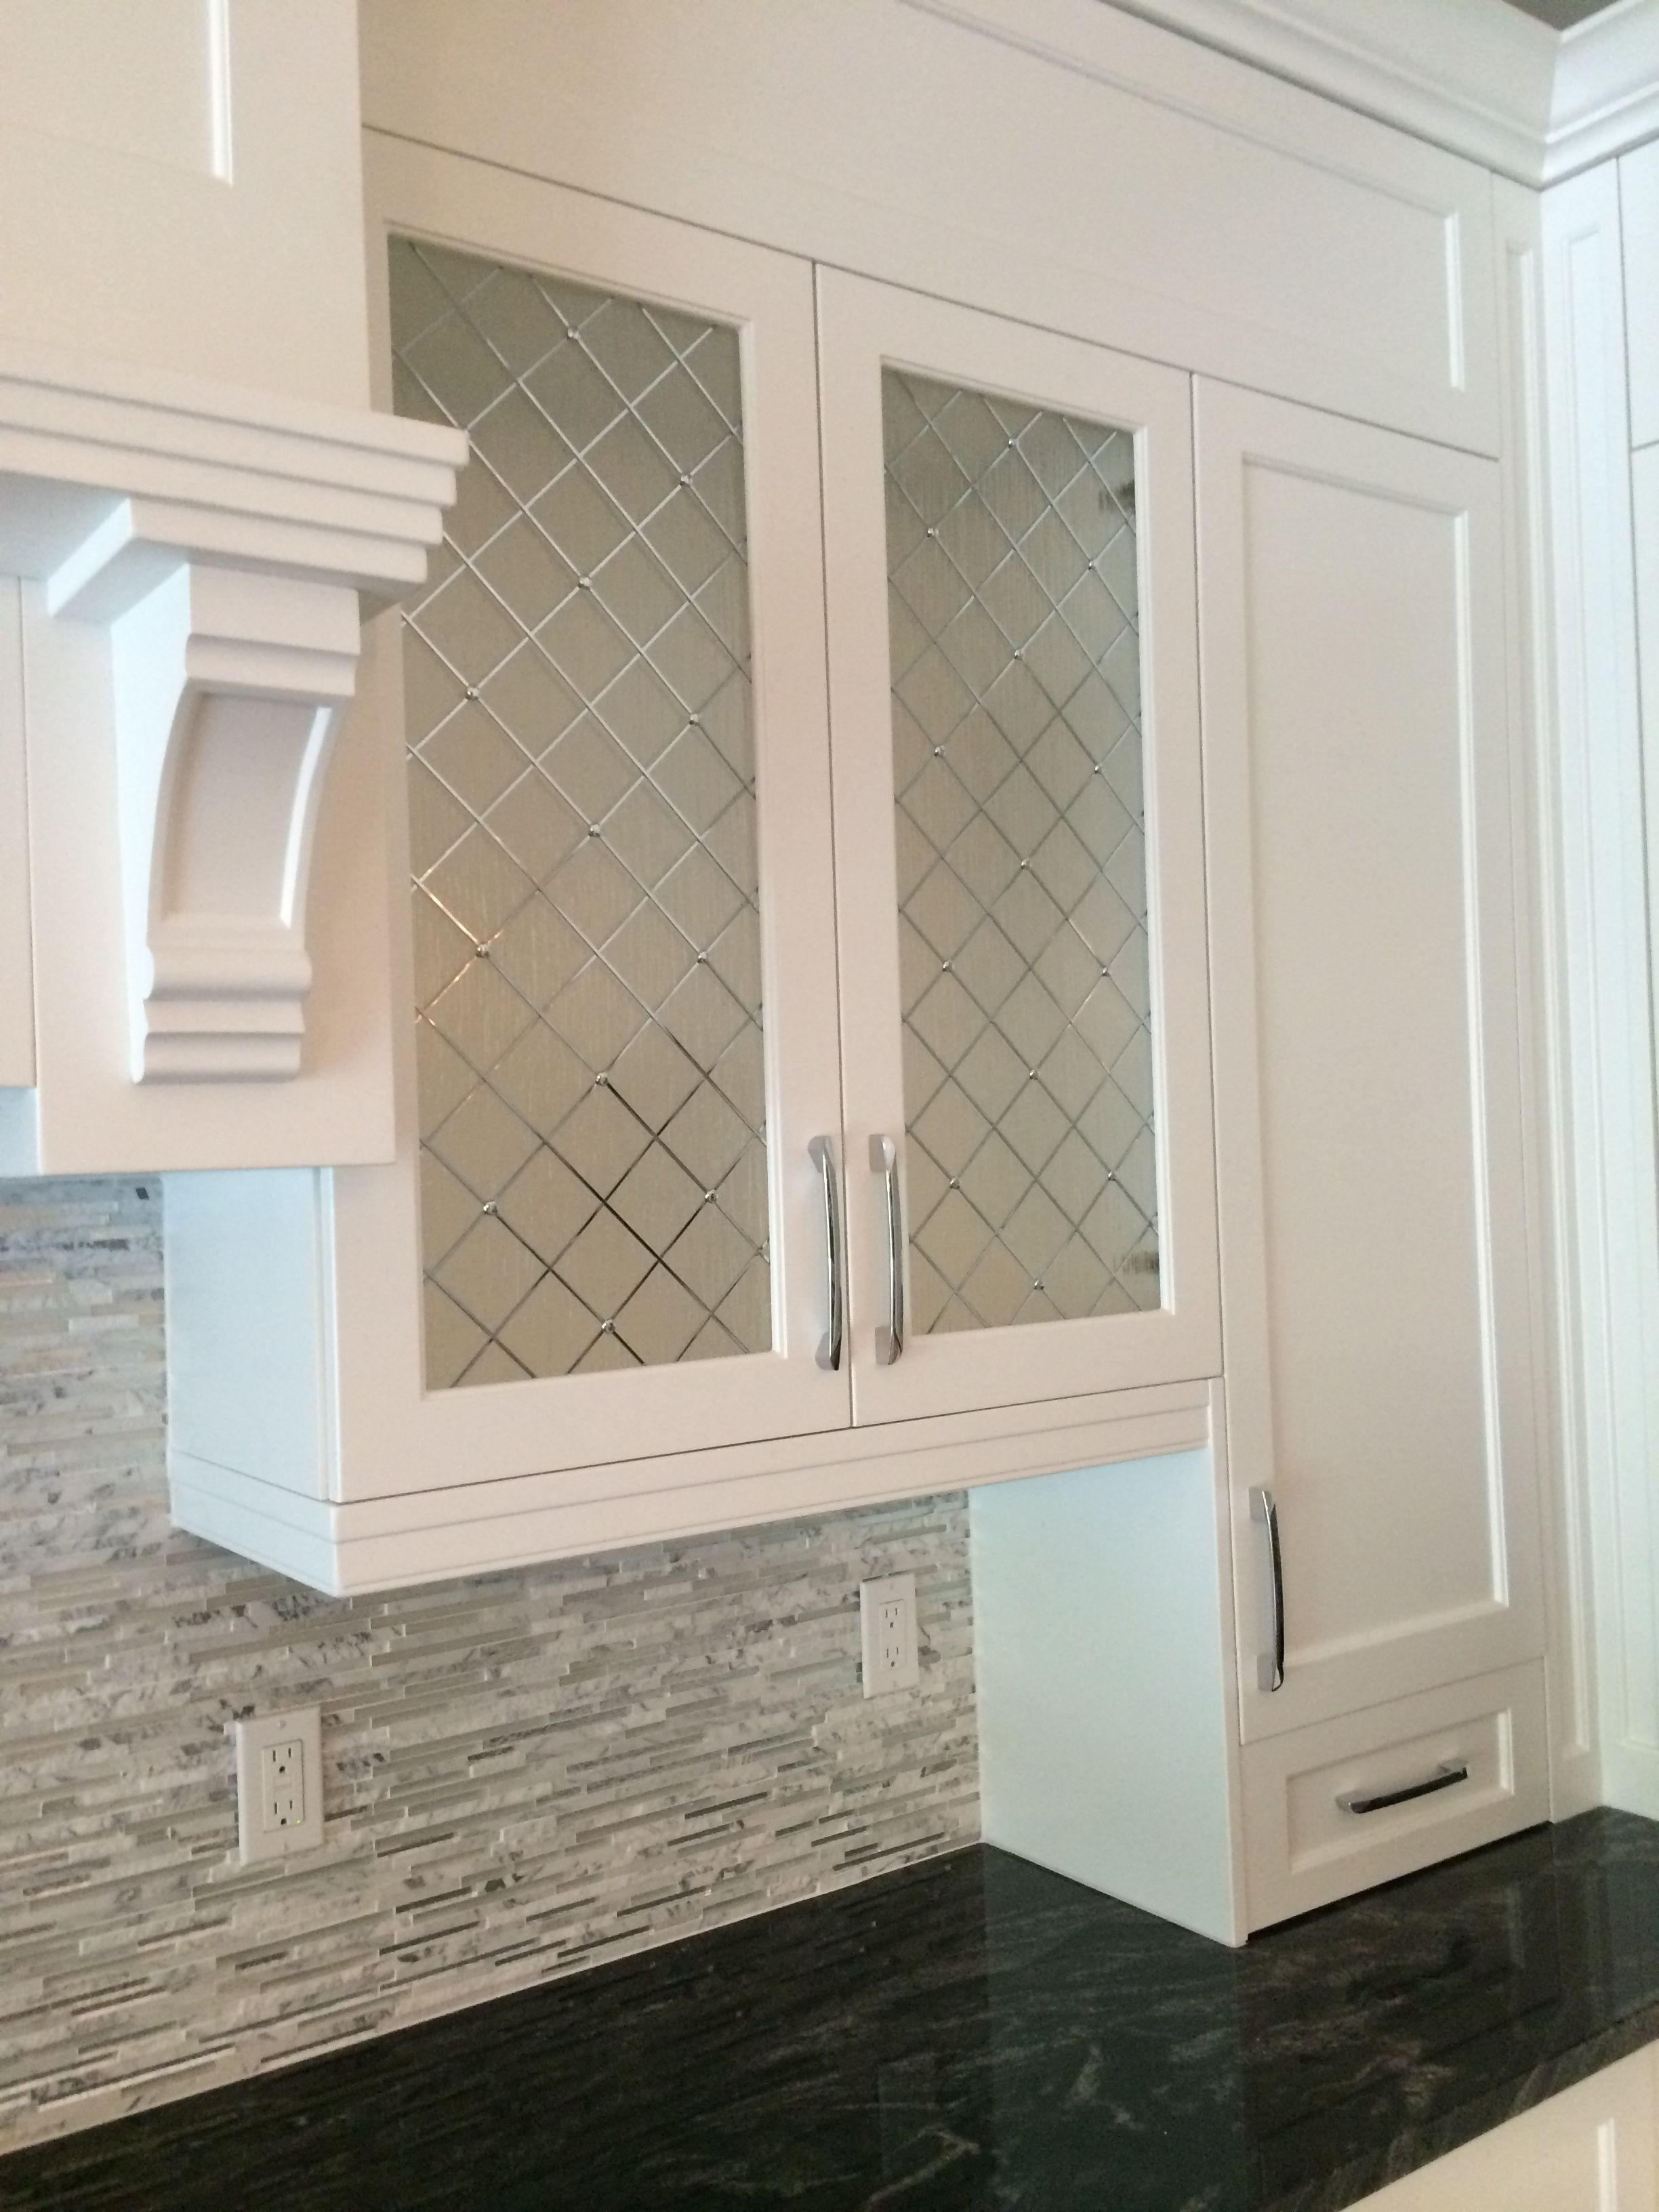 Glass Kitchen Cabinet Doors for Sale Inspirational Decorative Cabinet Glass Inserts